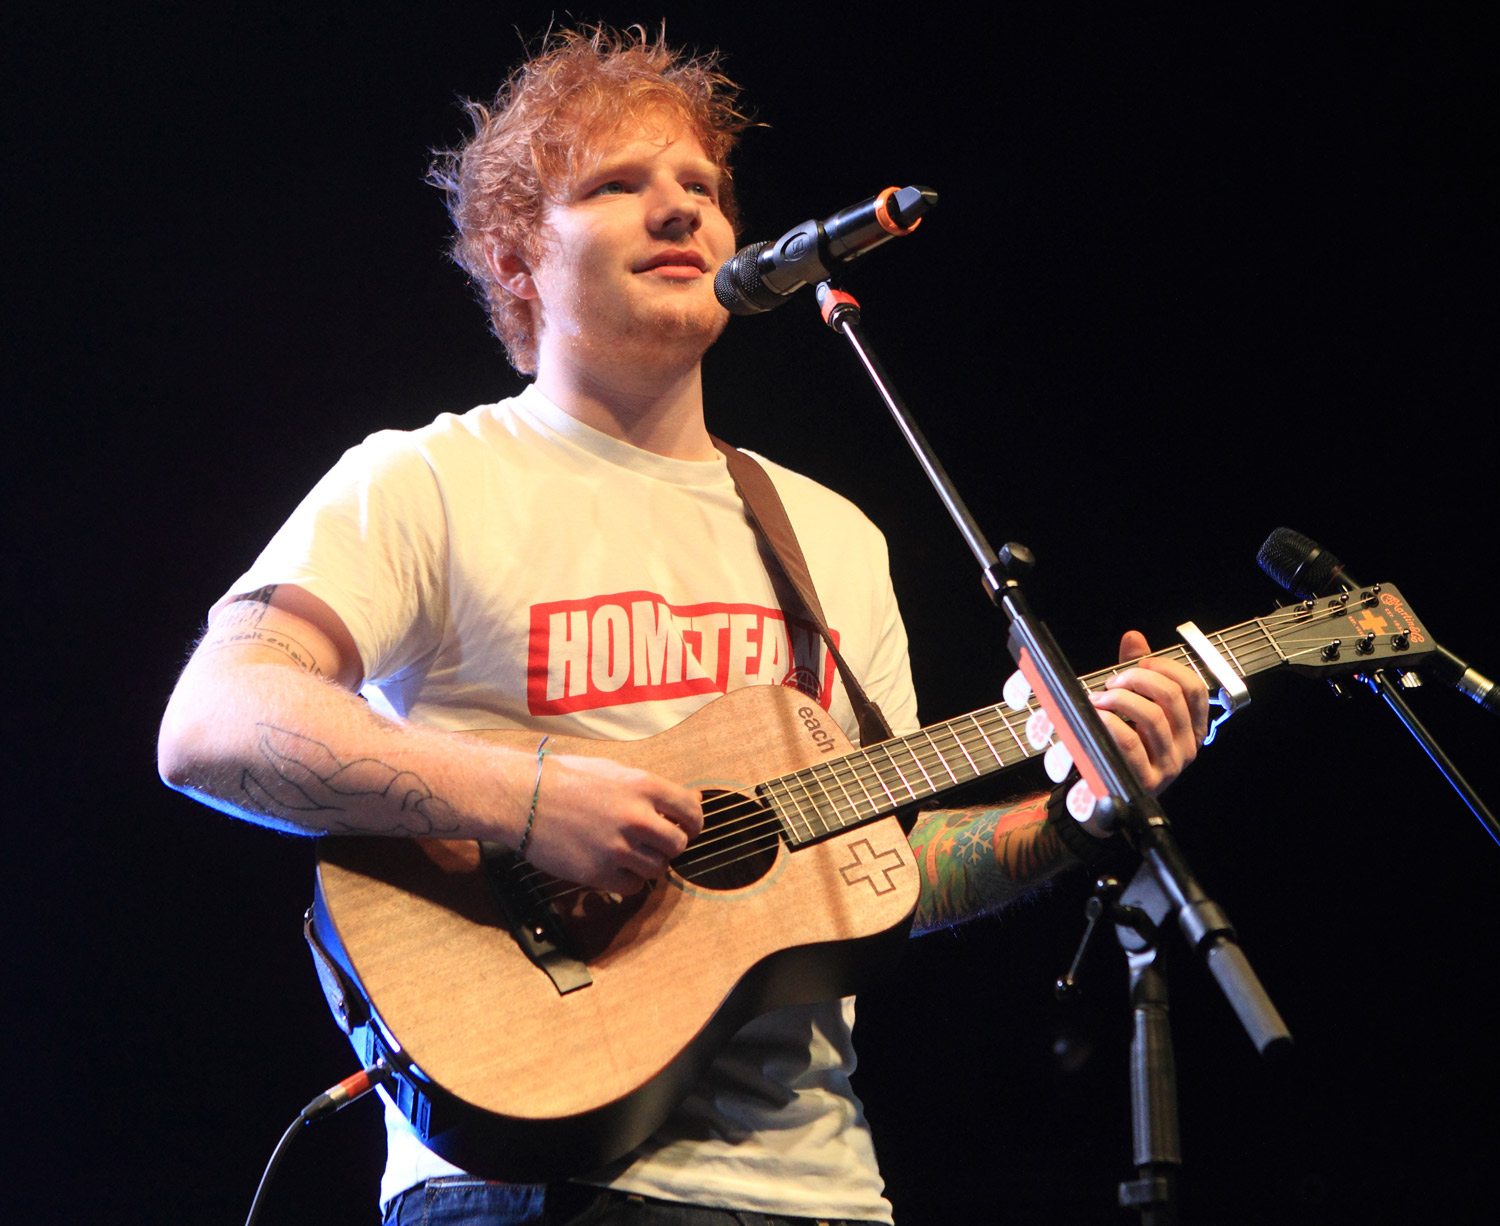 In this Sept. 18, 2013 file photo, English singer songwriter Ed Sheeran performs in concert at the Carpenter Center at the University of Delaware in Newark, Del.